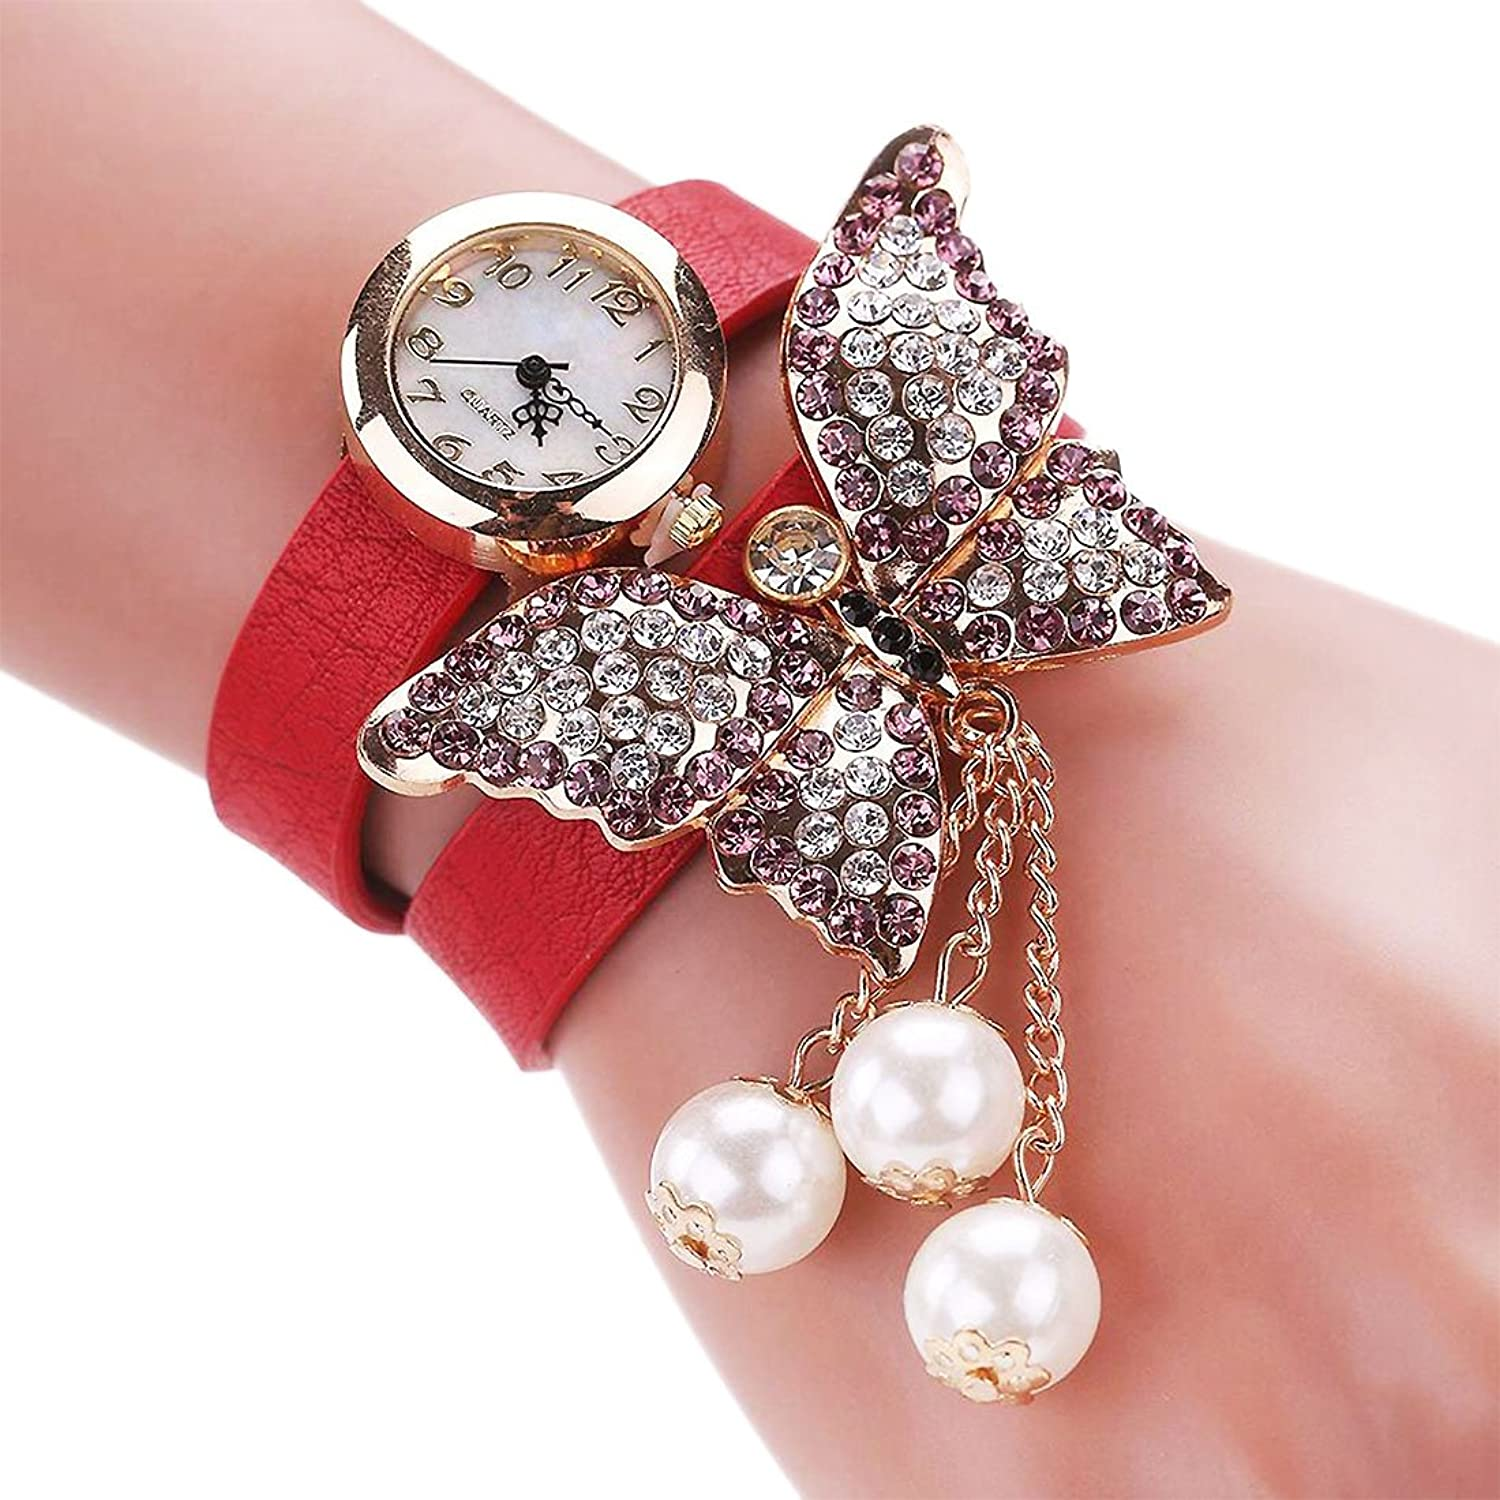 jacobs shop image mm of women marc crystal s classic watches bracelet womens product watch